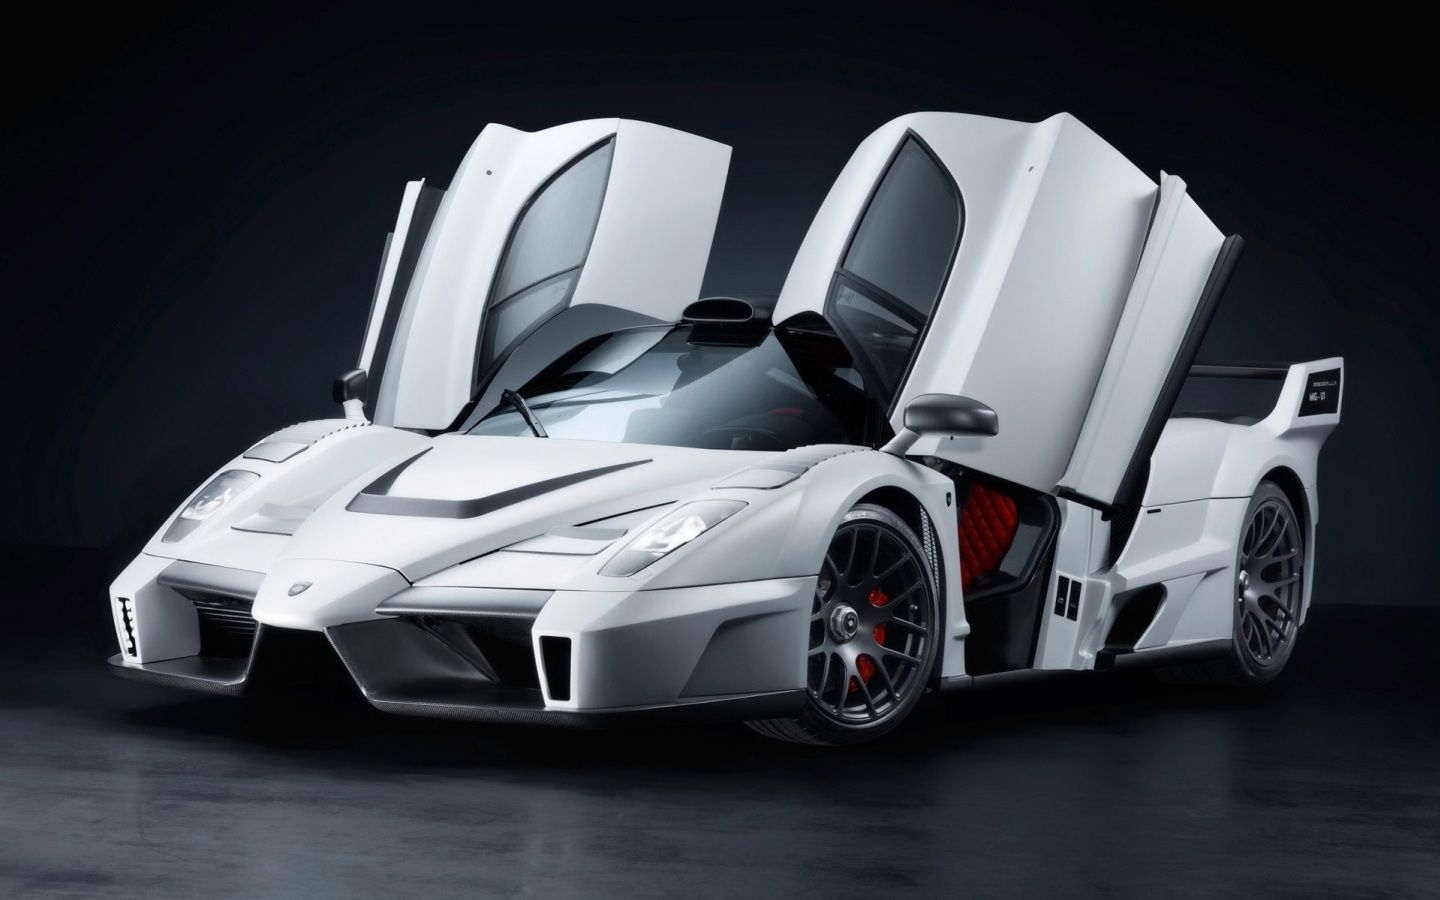 Sports Car Wallpaper | wallpapers | Pinterest | Sports cars ...